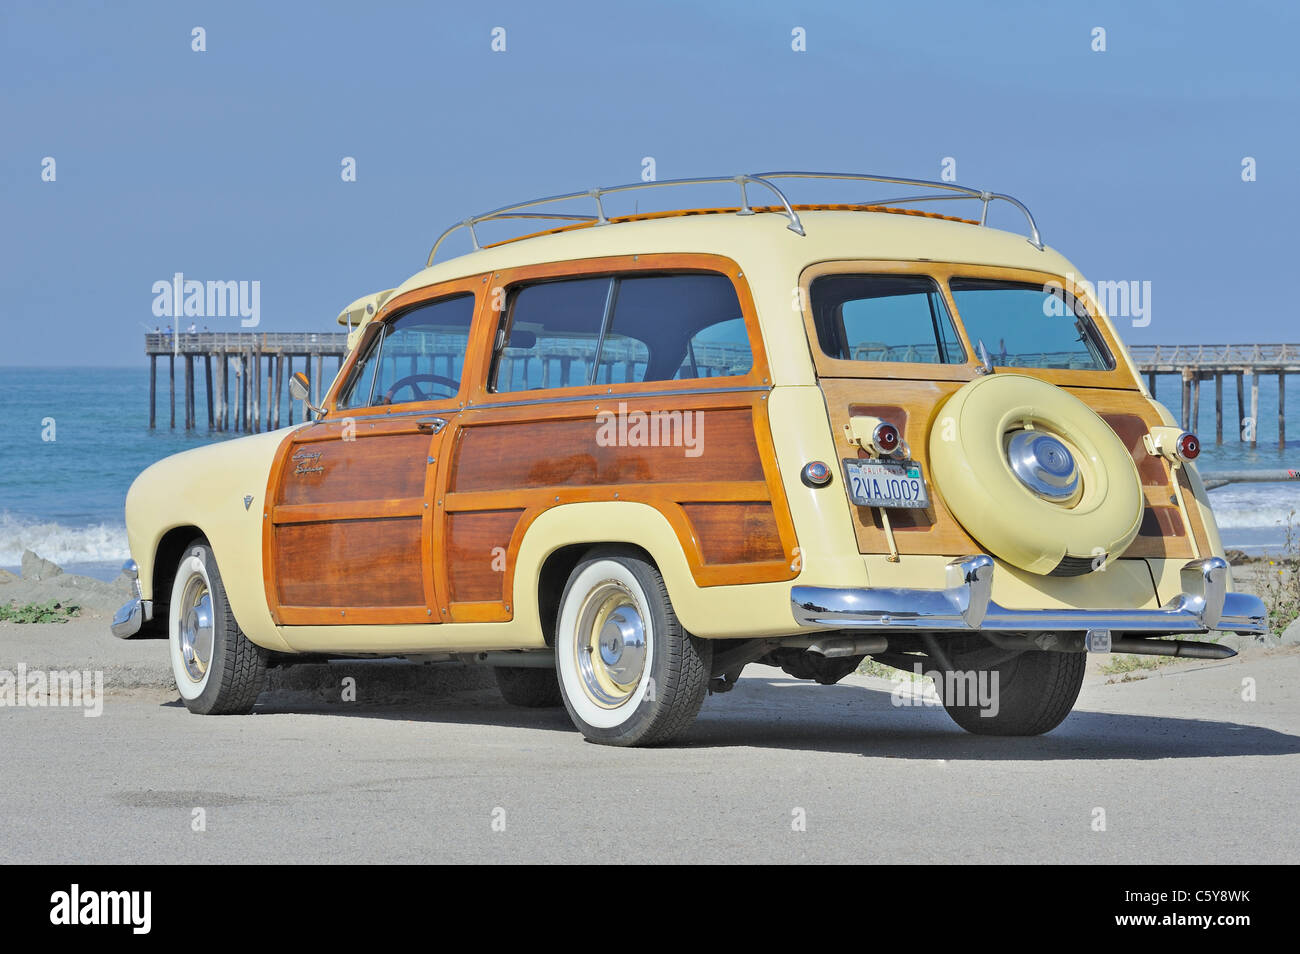 0e5847823a5d96 Classic American ford country squire station wagon car by beach - Stock  Image